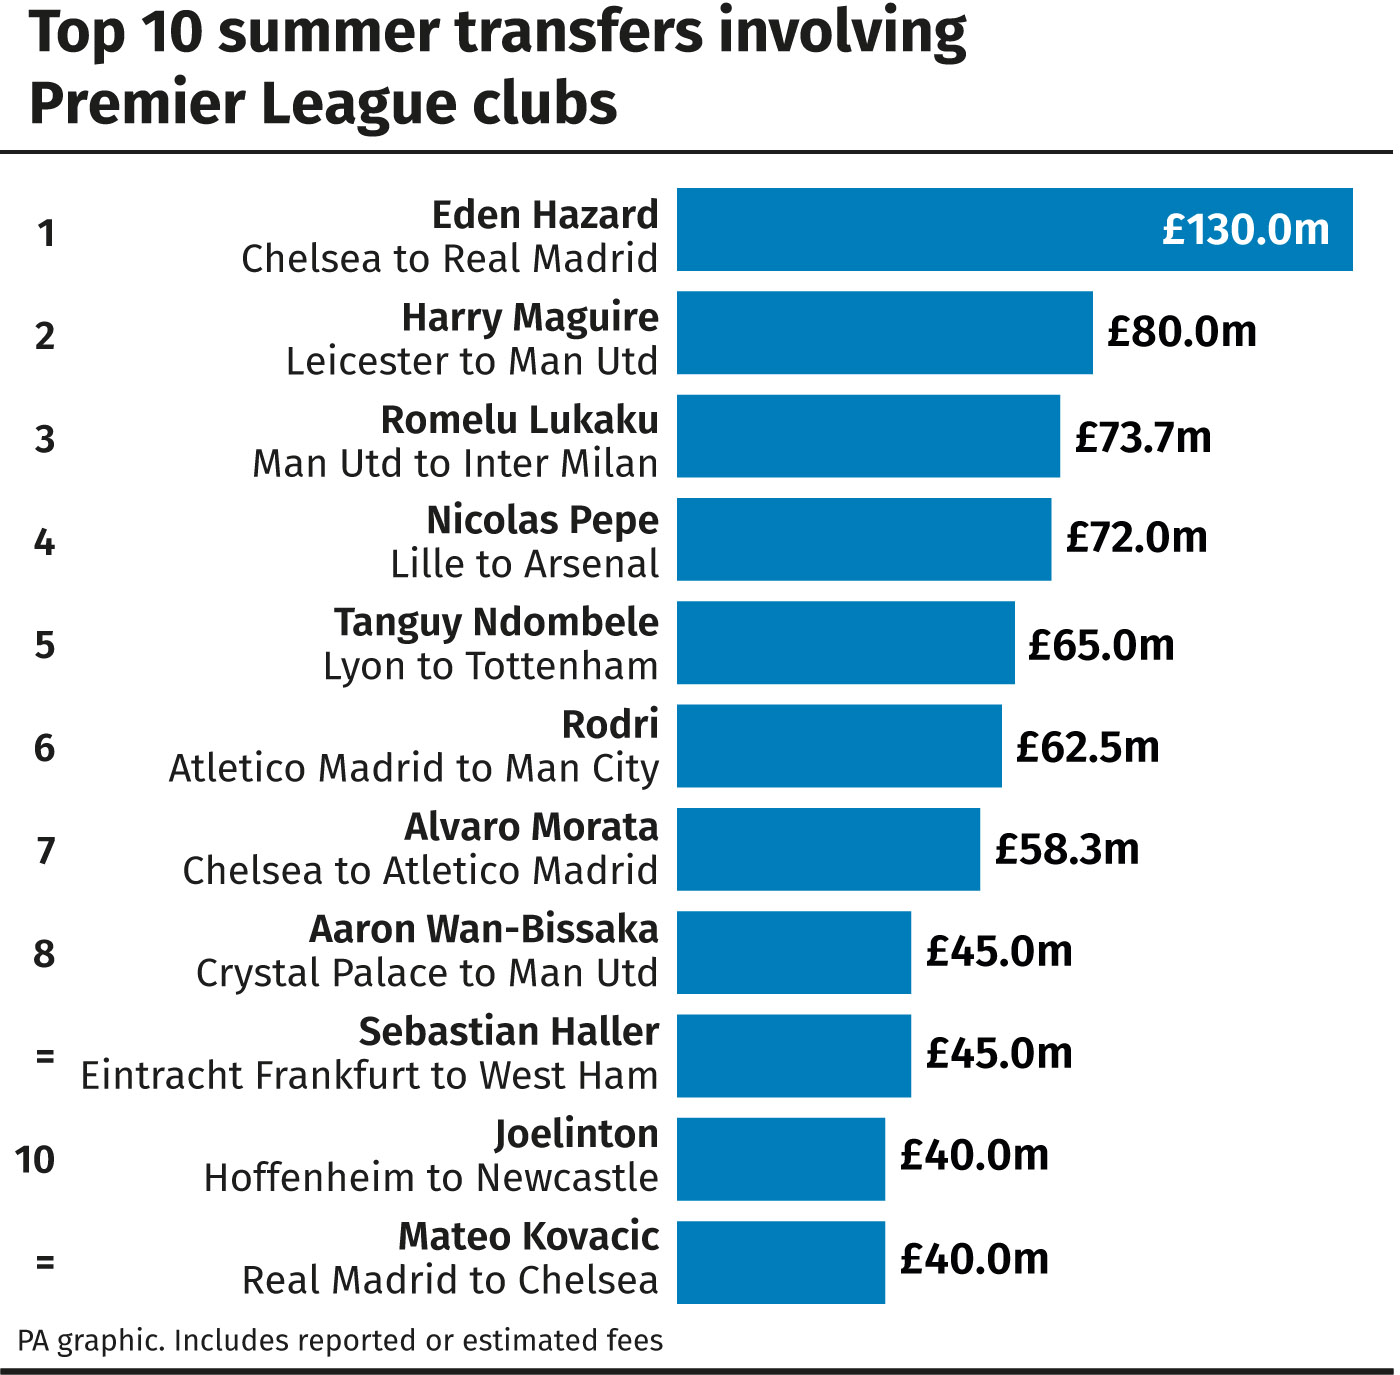 Trend expected to continue as Premier League spending tops £1billion